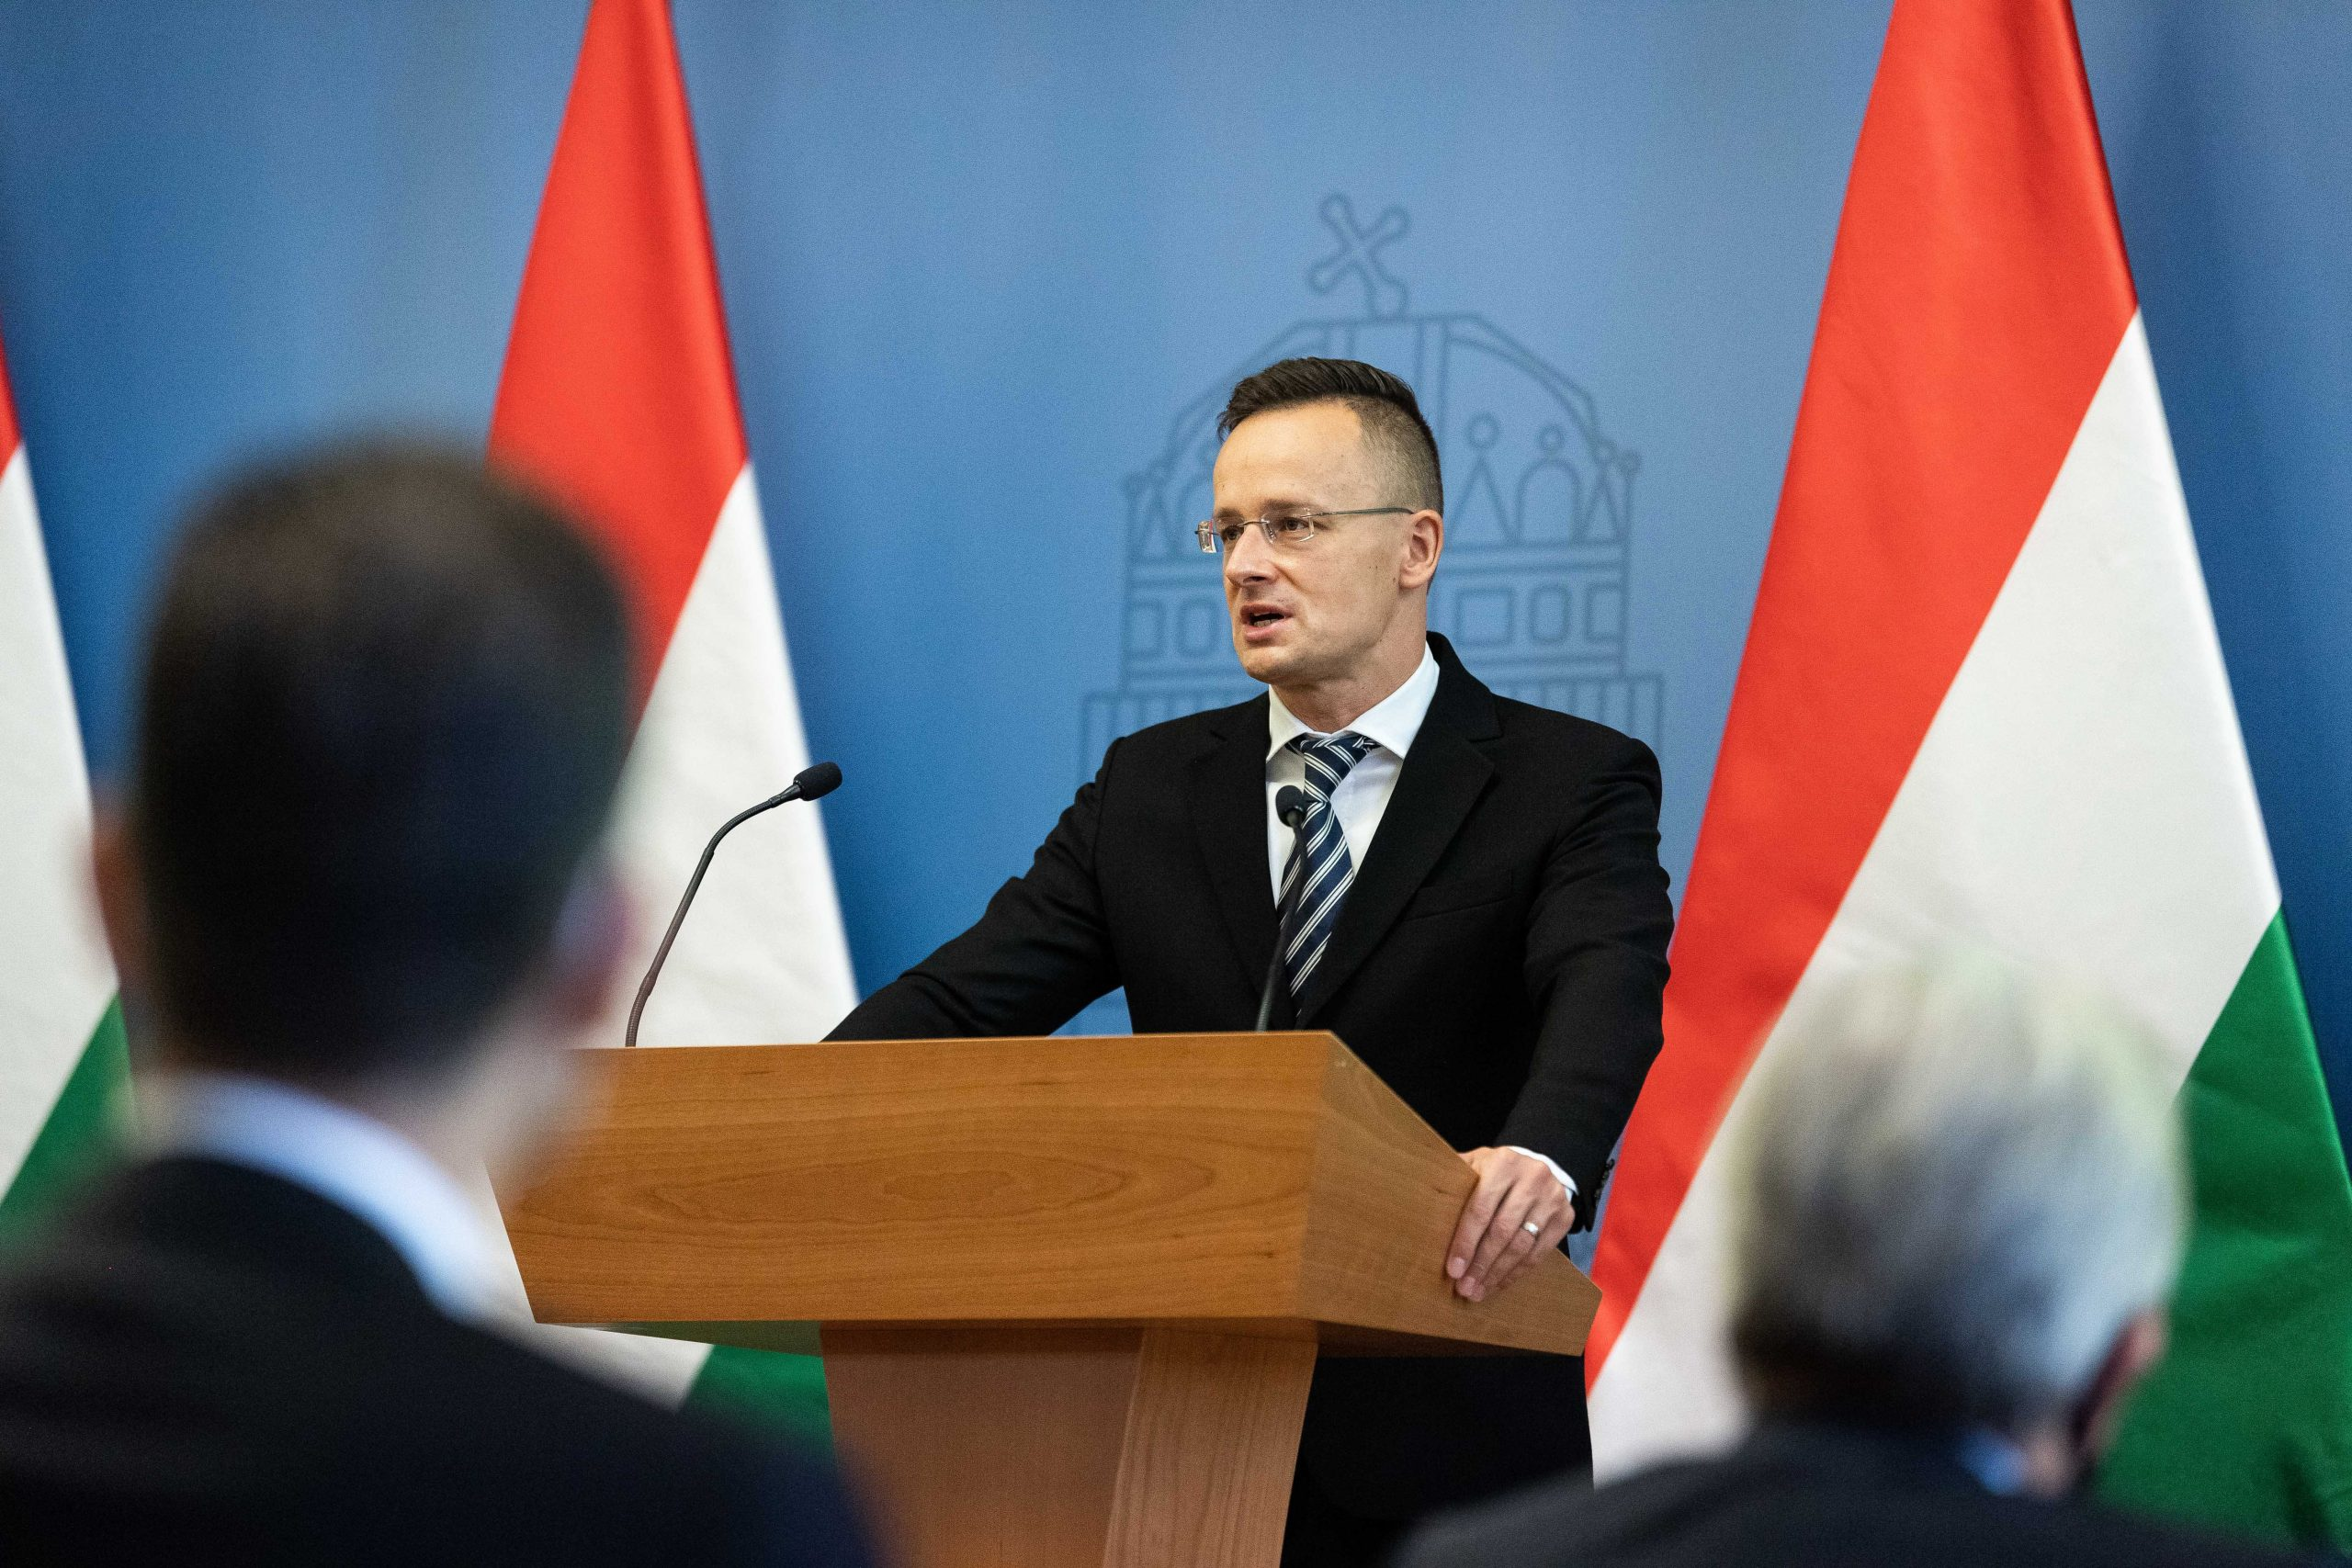 Foreign Minister Szijjártó: Ukraine's Stripping Hungarians of Their Rights Unacceptable